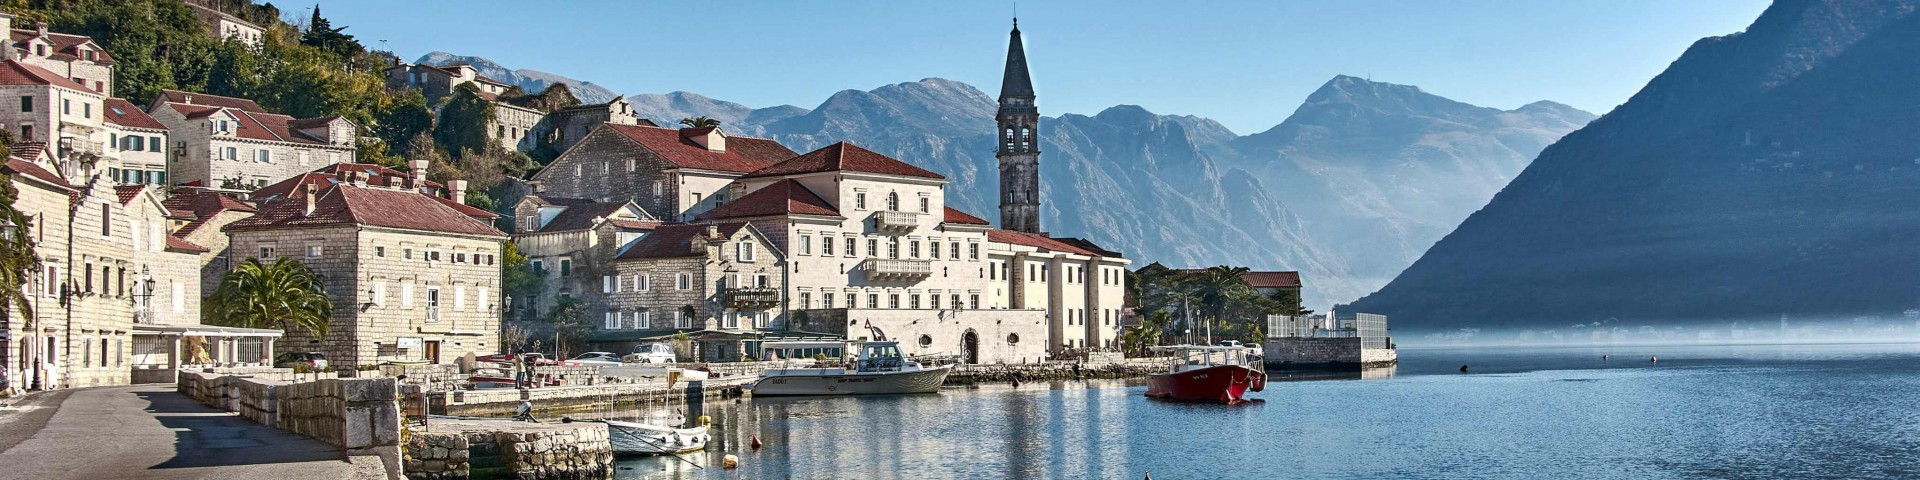 Perast, the Most Beautiful Town in the Kotor Bay